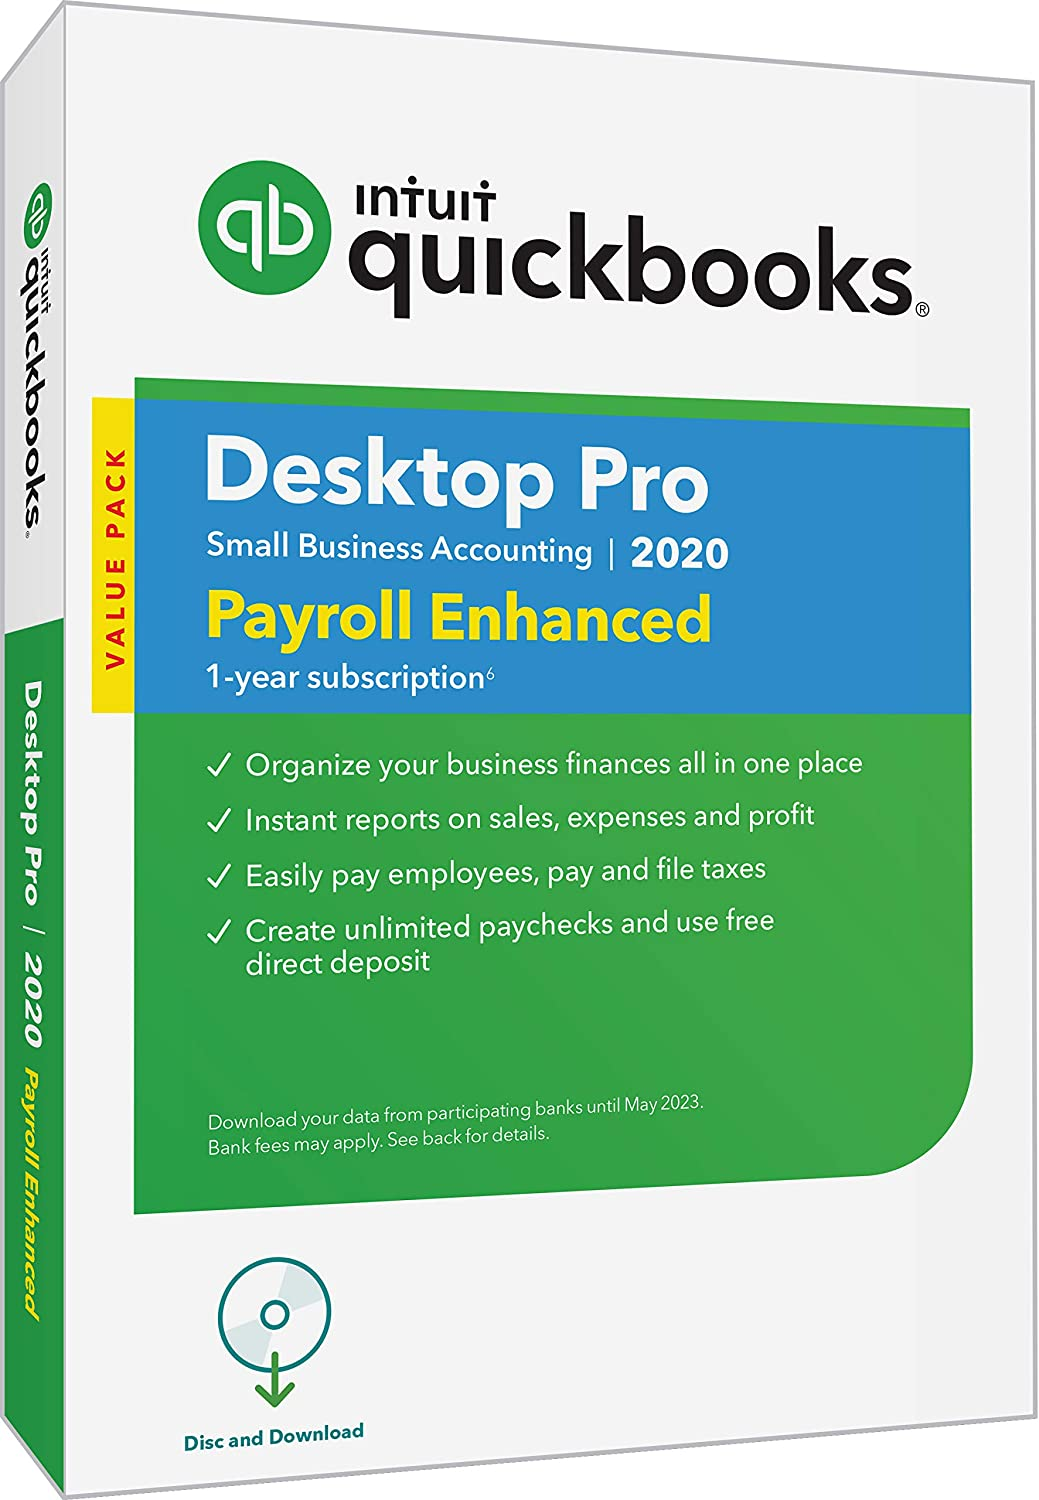 QuickBooks DesktopPro with Enhanced Payroll 2020Accounting Software for Small Business with Amazon Exclusive Shortcut Guide [PC Disc]